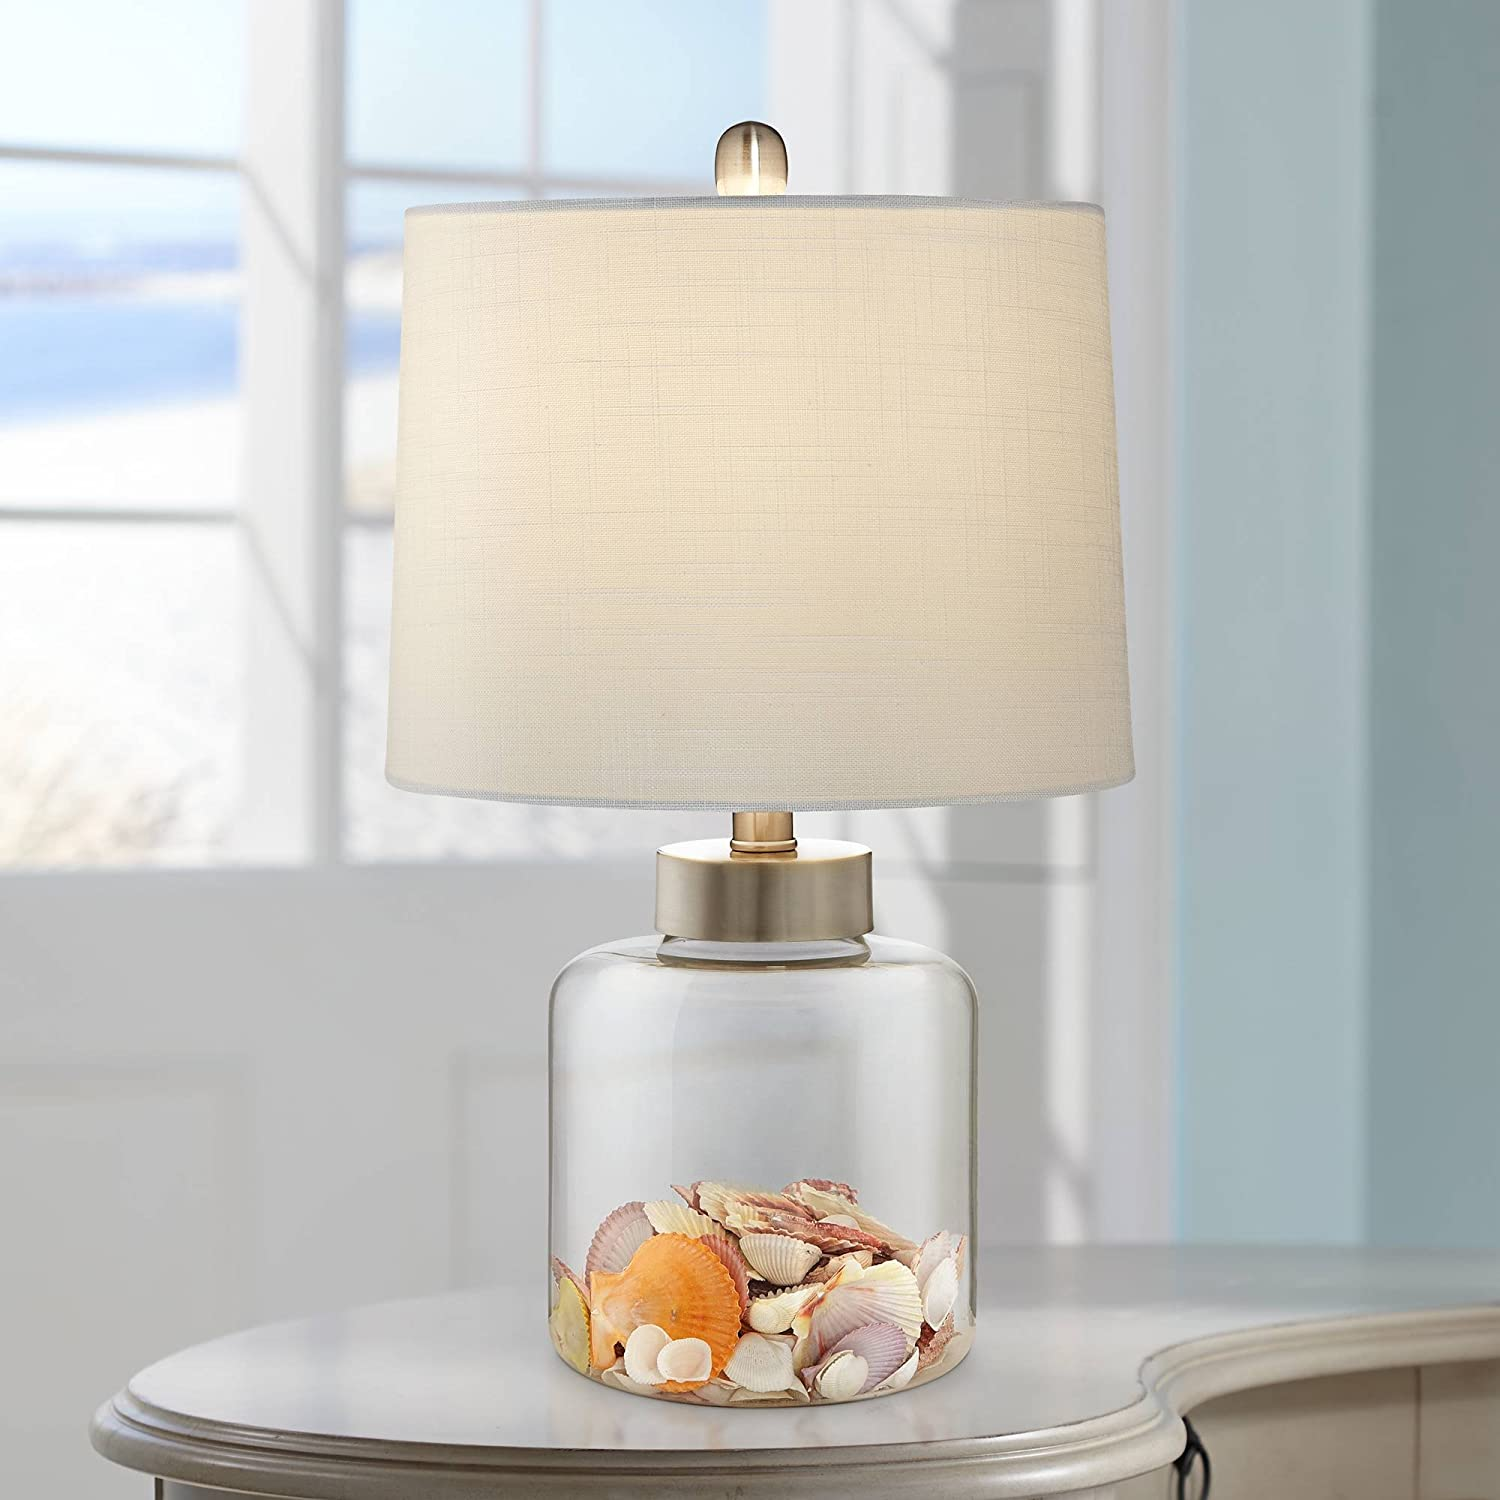 Nautical Accent Table Lamp Clear Glass Fillable Sea Shells Off White Linen Drum Shade for Living Room Bedroom Bedside - 360 Lighting